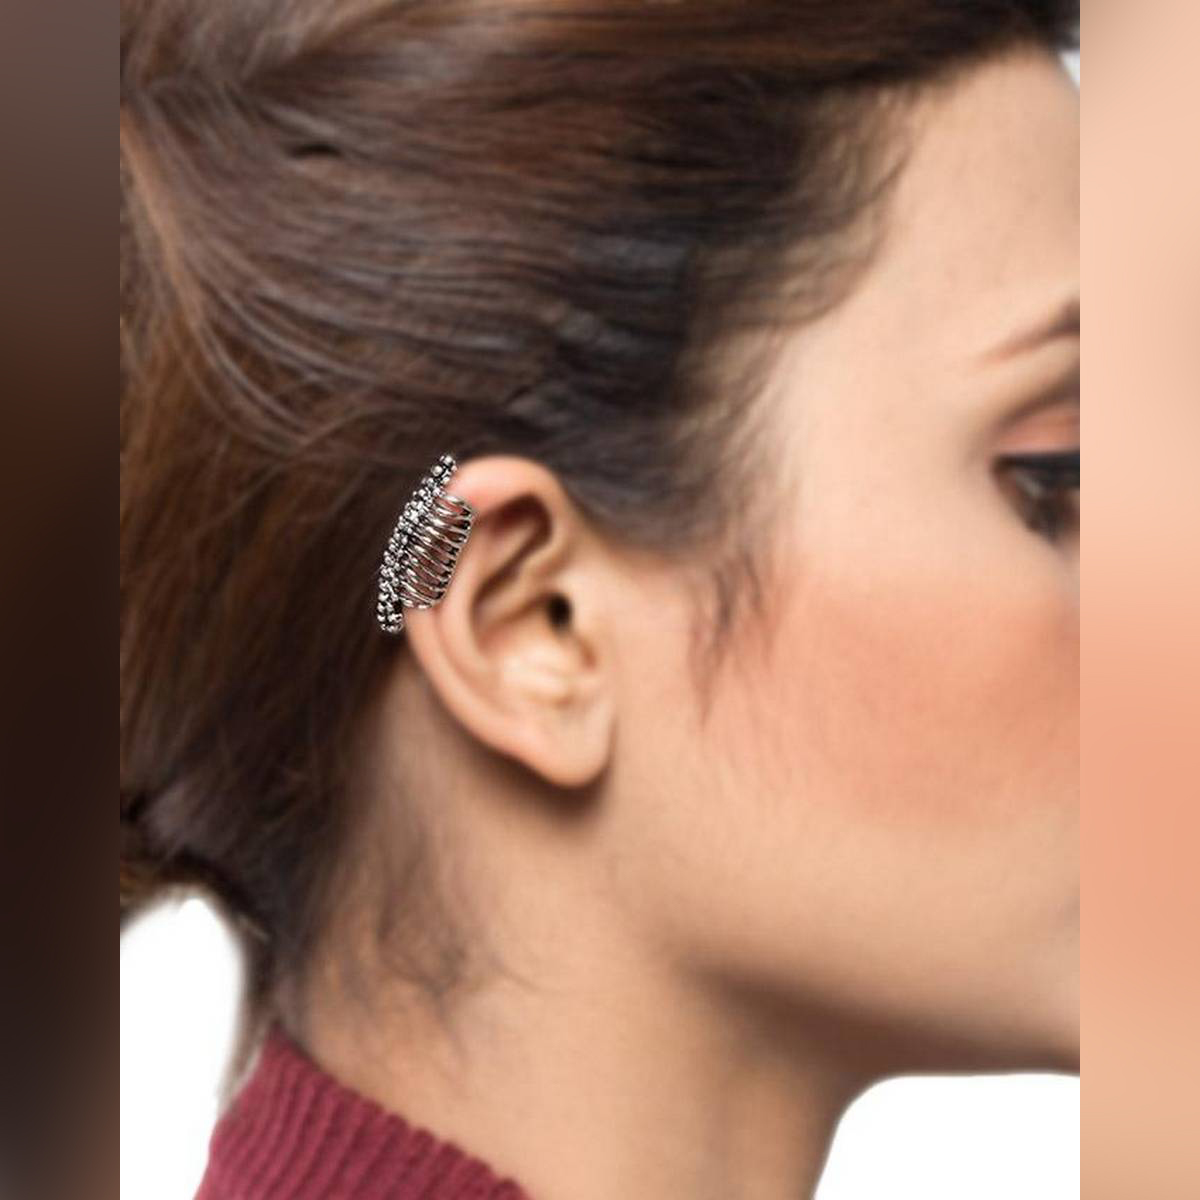 Ear Cuff for Upper Ear for Her-